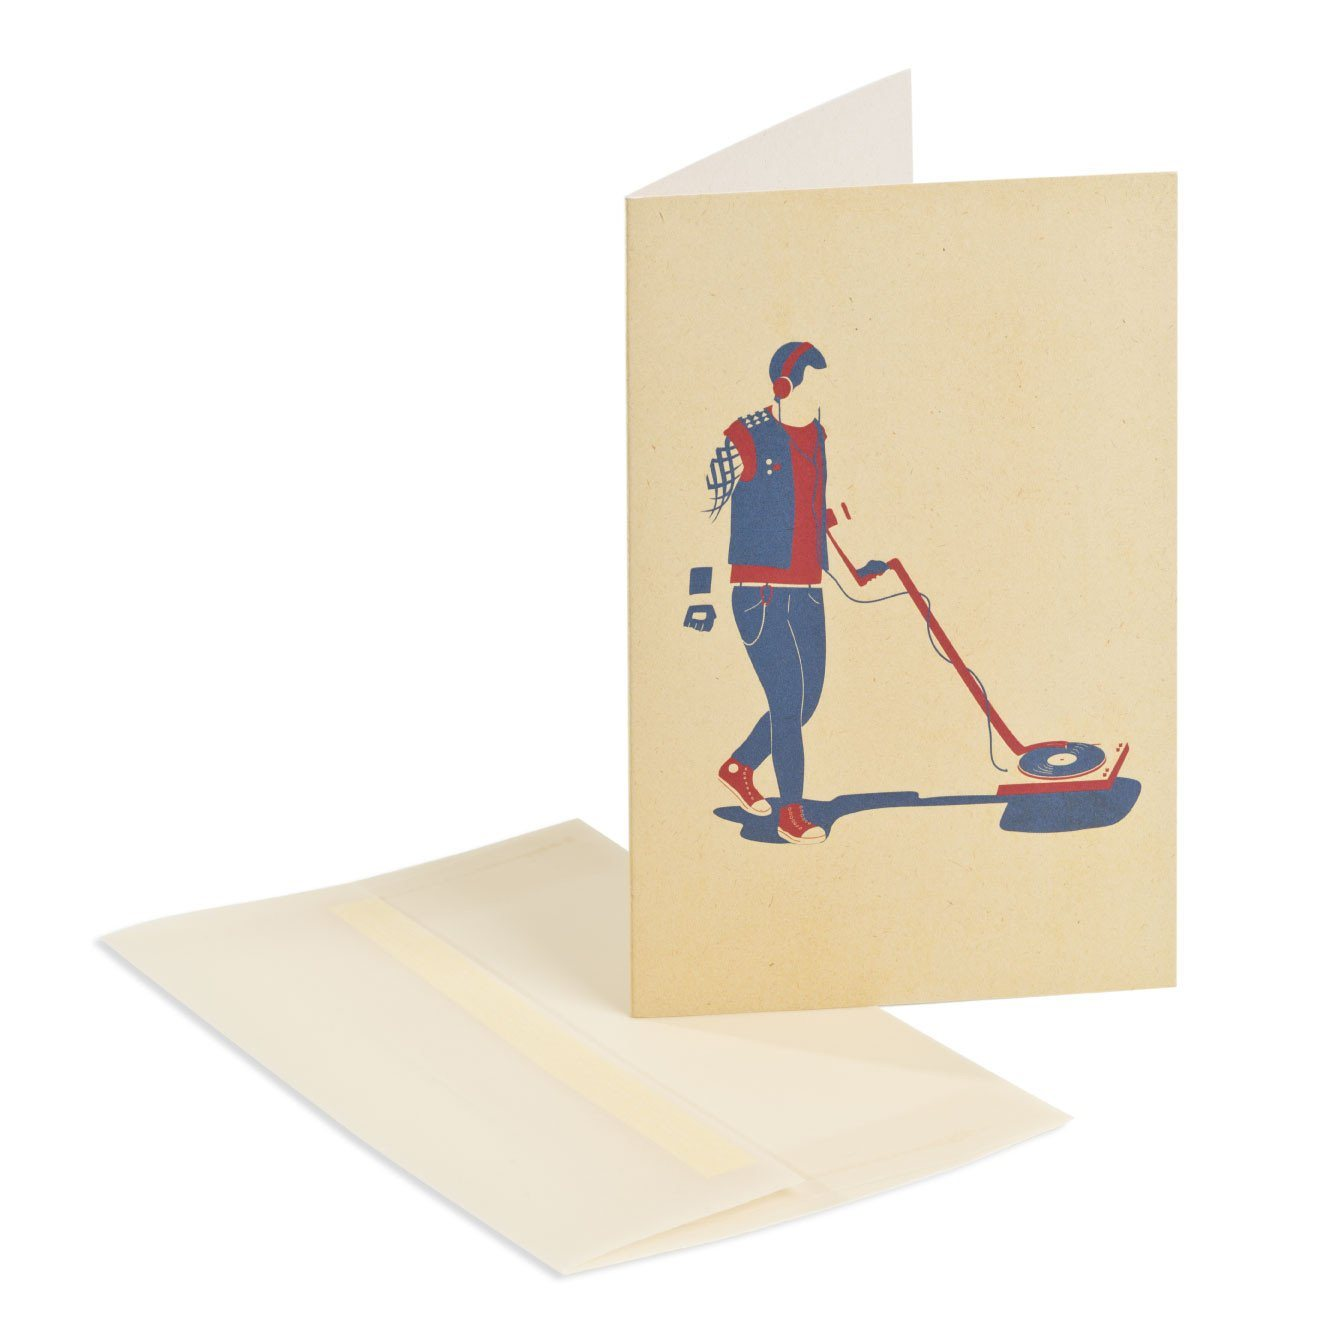 Heavy metal detector Greeting Card - Generic Greeting Cards - MULTIFOLIA ATELIER di Rita Girola - Naiise